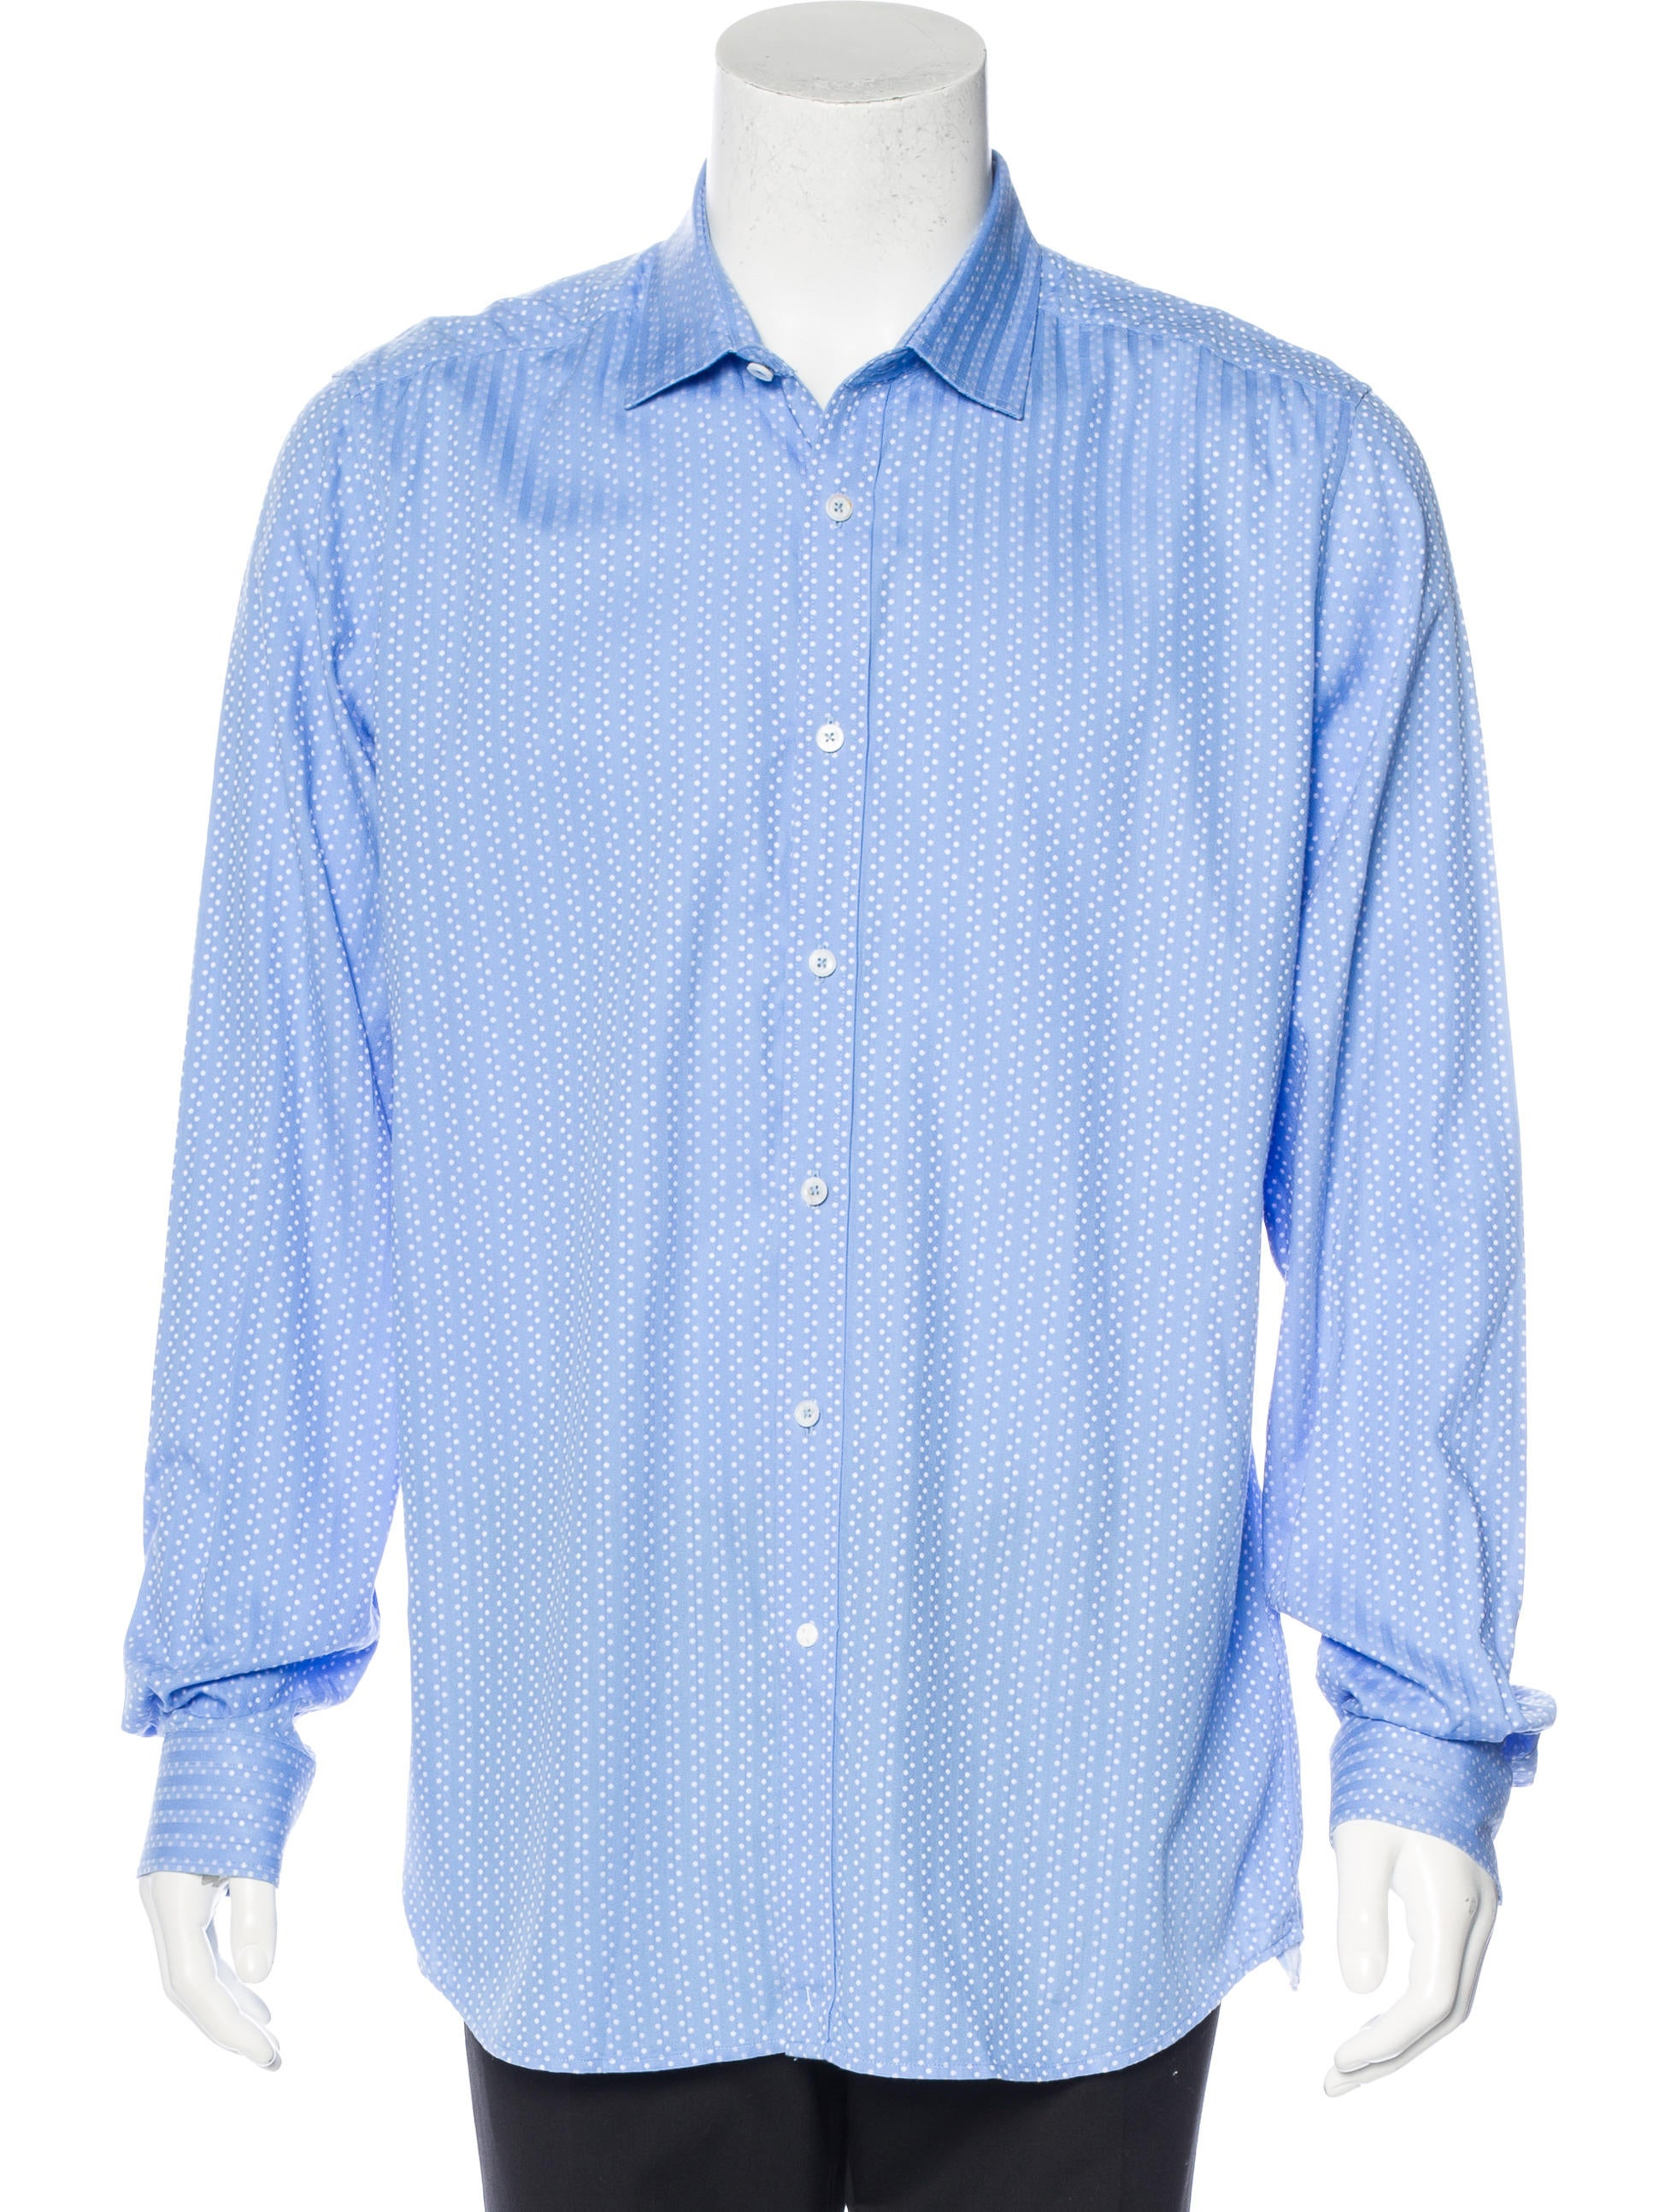 Robert graham tailored fit print shirt clothing for Tailored fit dress shirts